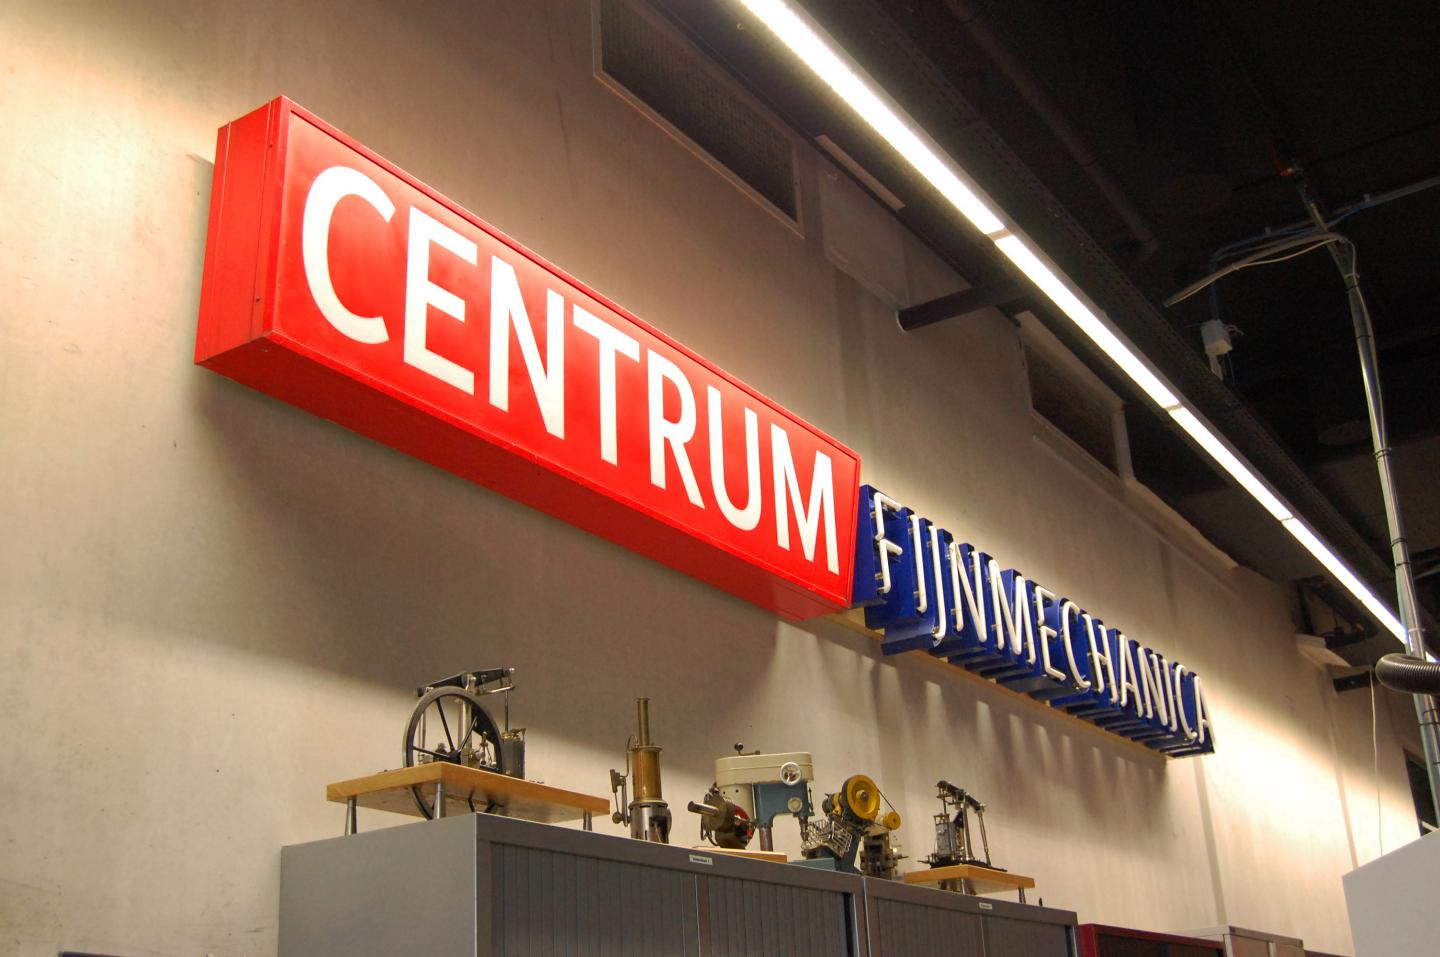 Centrum Fijnmechanica